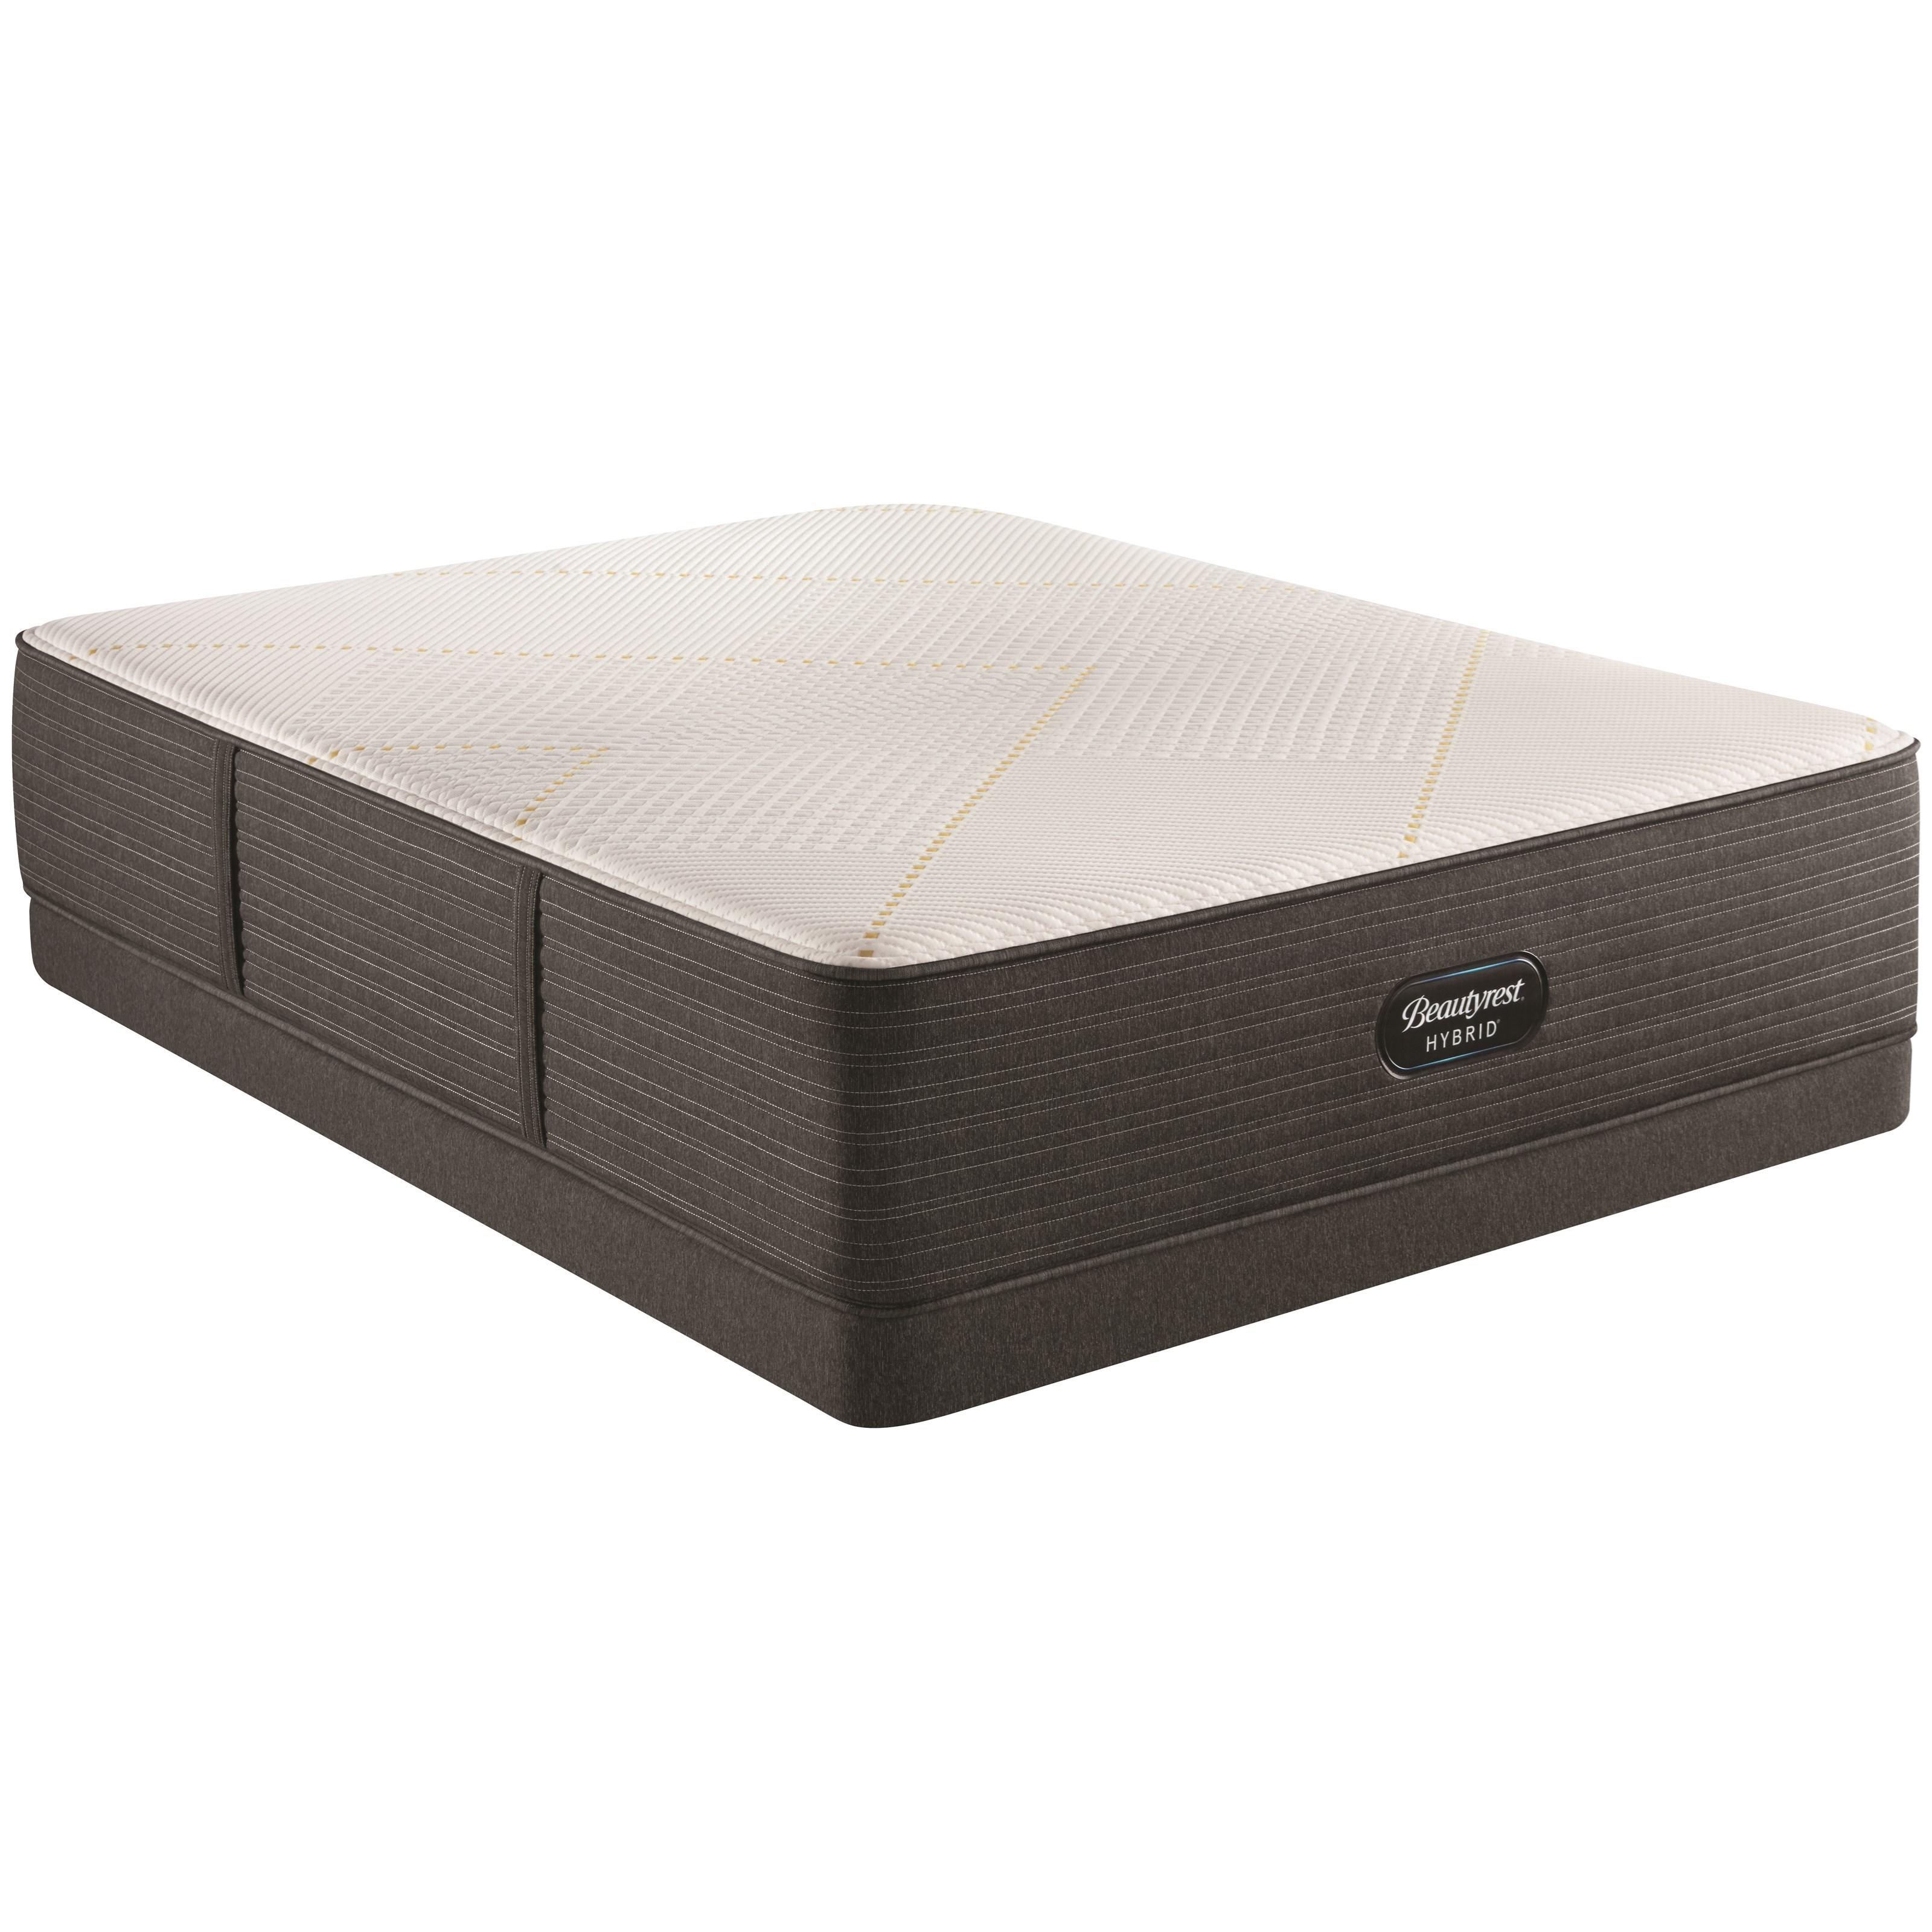 "BRX3000-IM Firm Hybrid Queen 14 1/2"" Hybrid Low Profile Set by Beautyrest at HomeWorld Furniture"